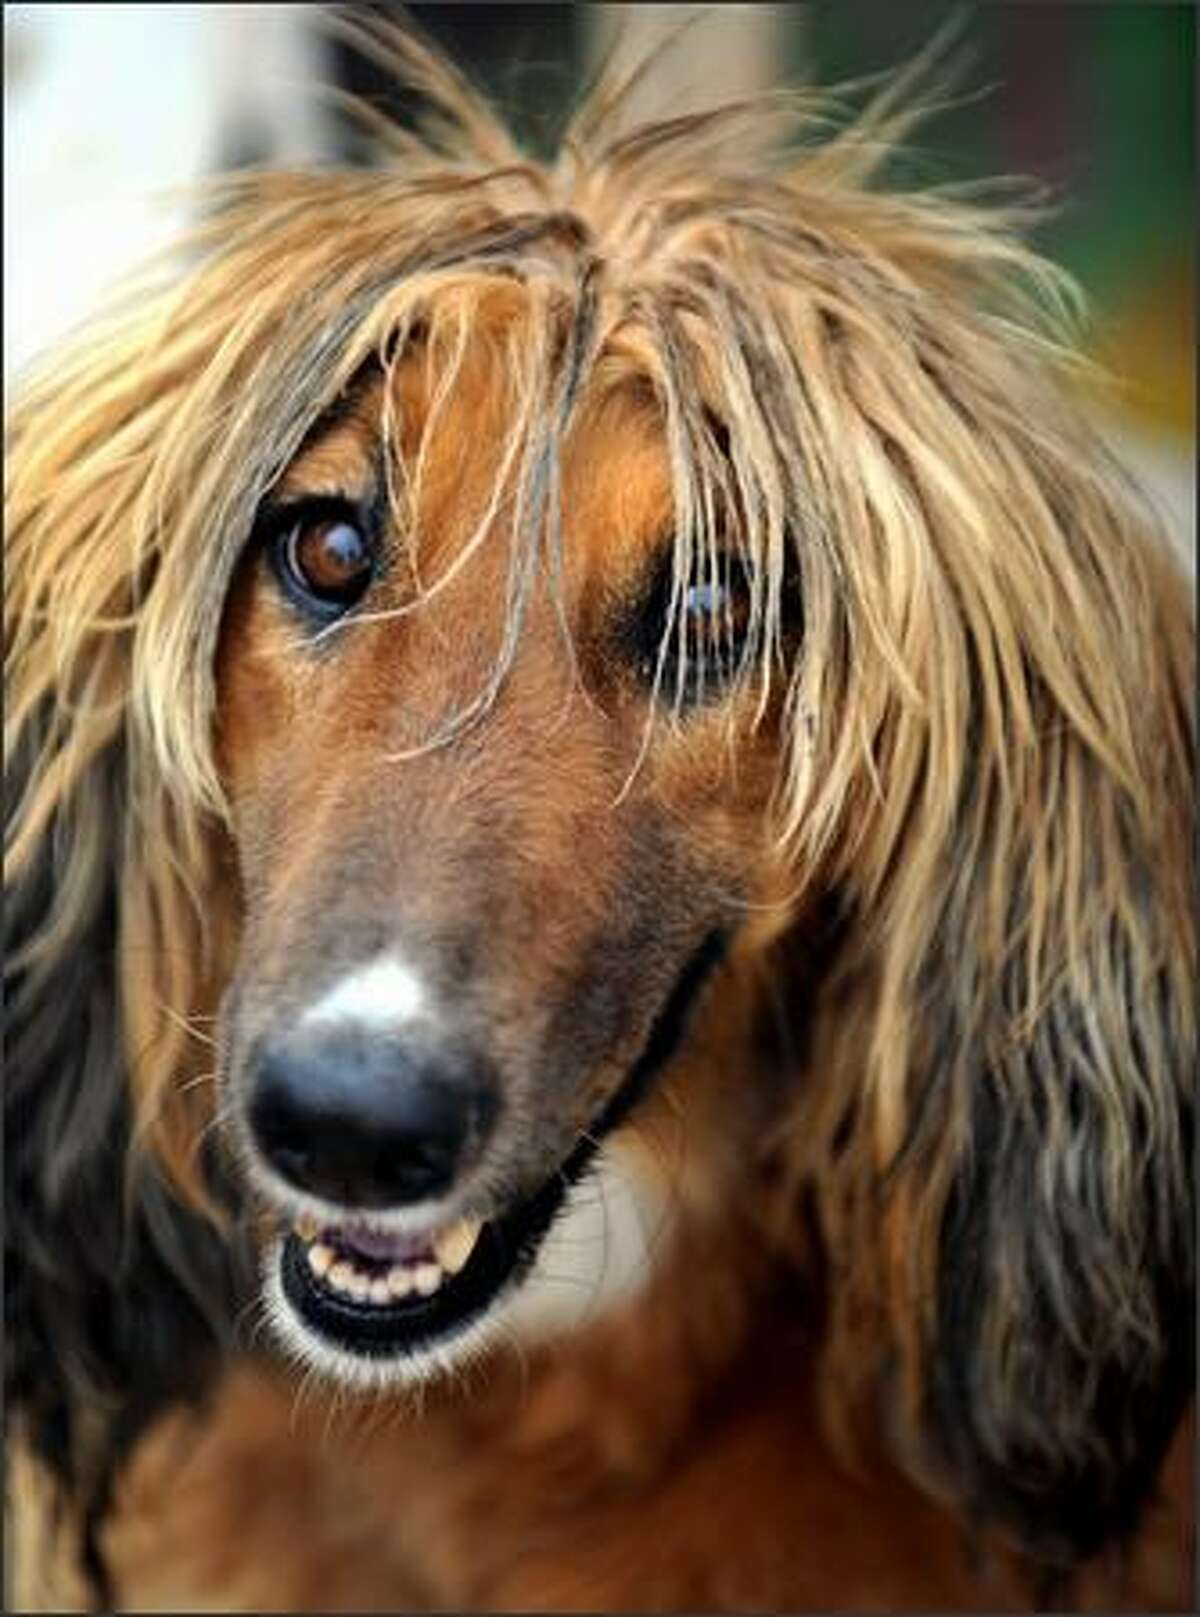 An Afghan hound, named Kamolika after an Indian soap star, is pictured at a camp for displaced people in Kabul on May4. Afghan hounds originate from around Afghanistan and Russia but are today not commonly seen in Afghanistan, where dogs are more often kept for security or fighting than as pets, even though they are prized internationally.